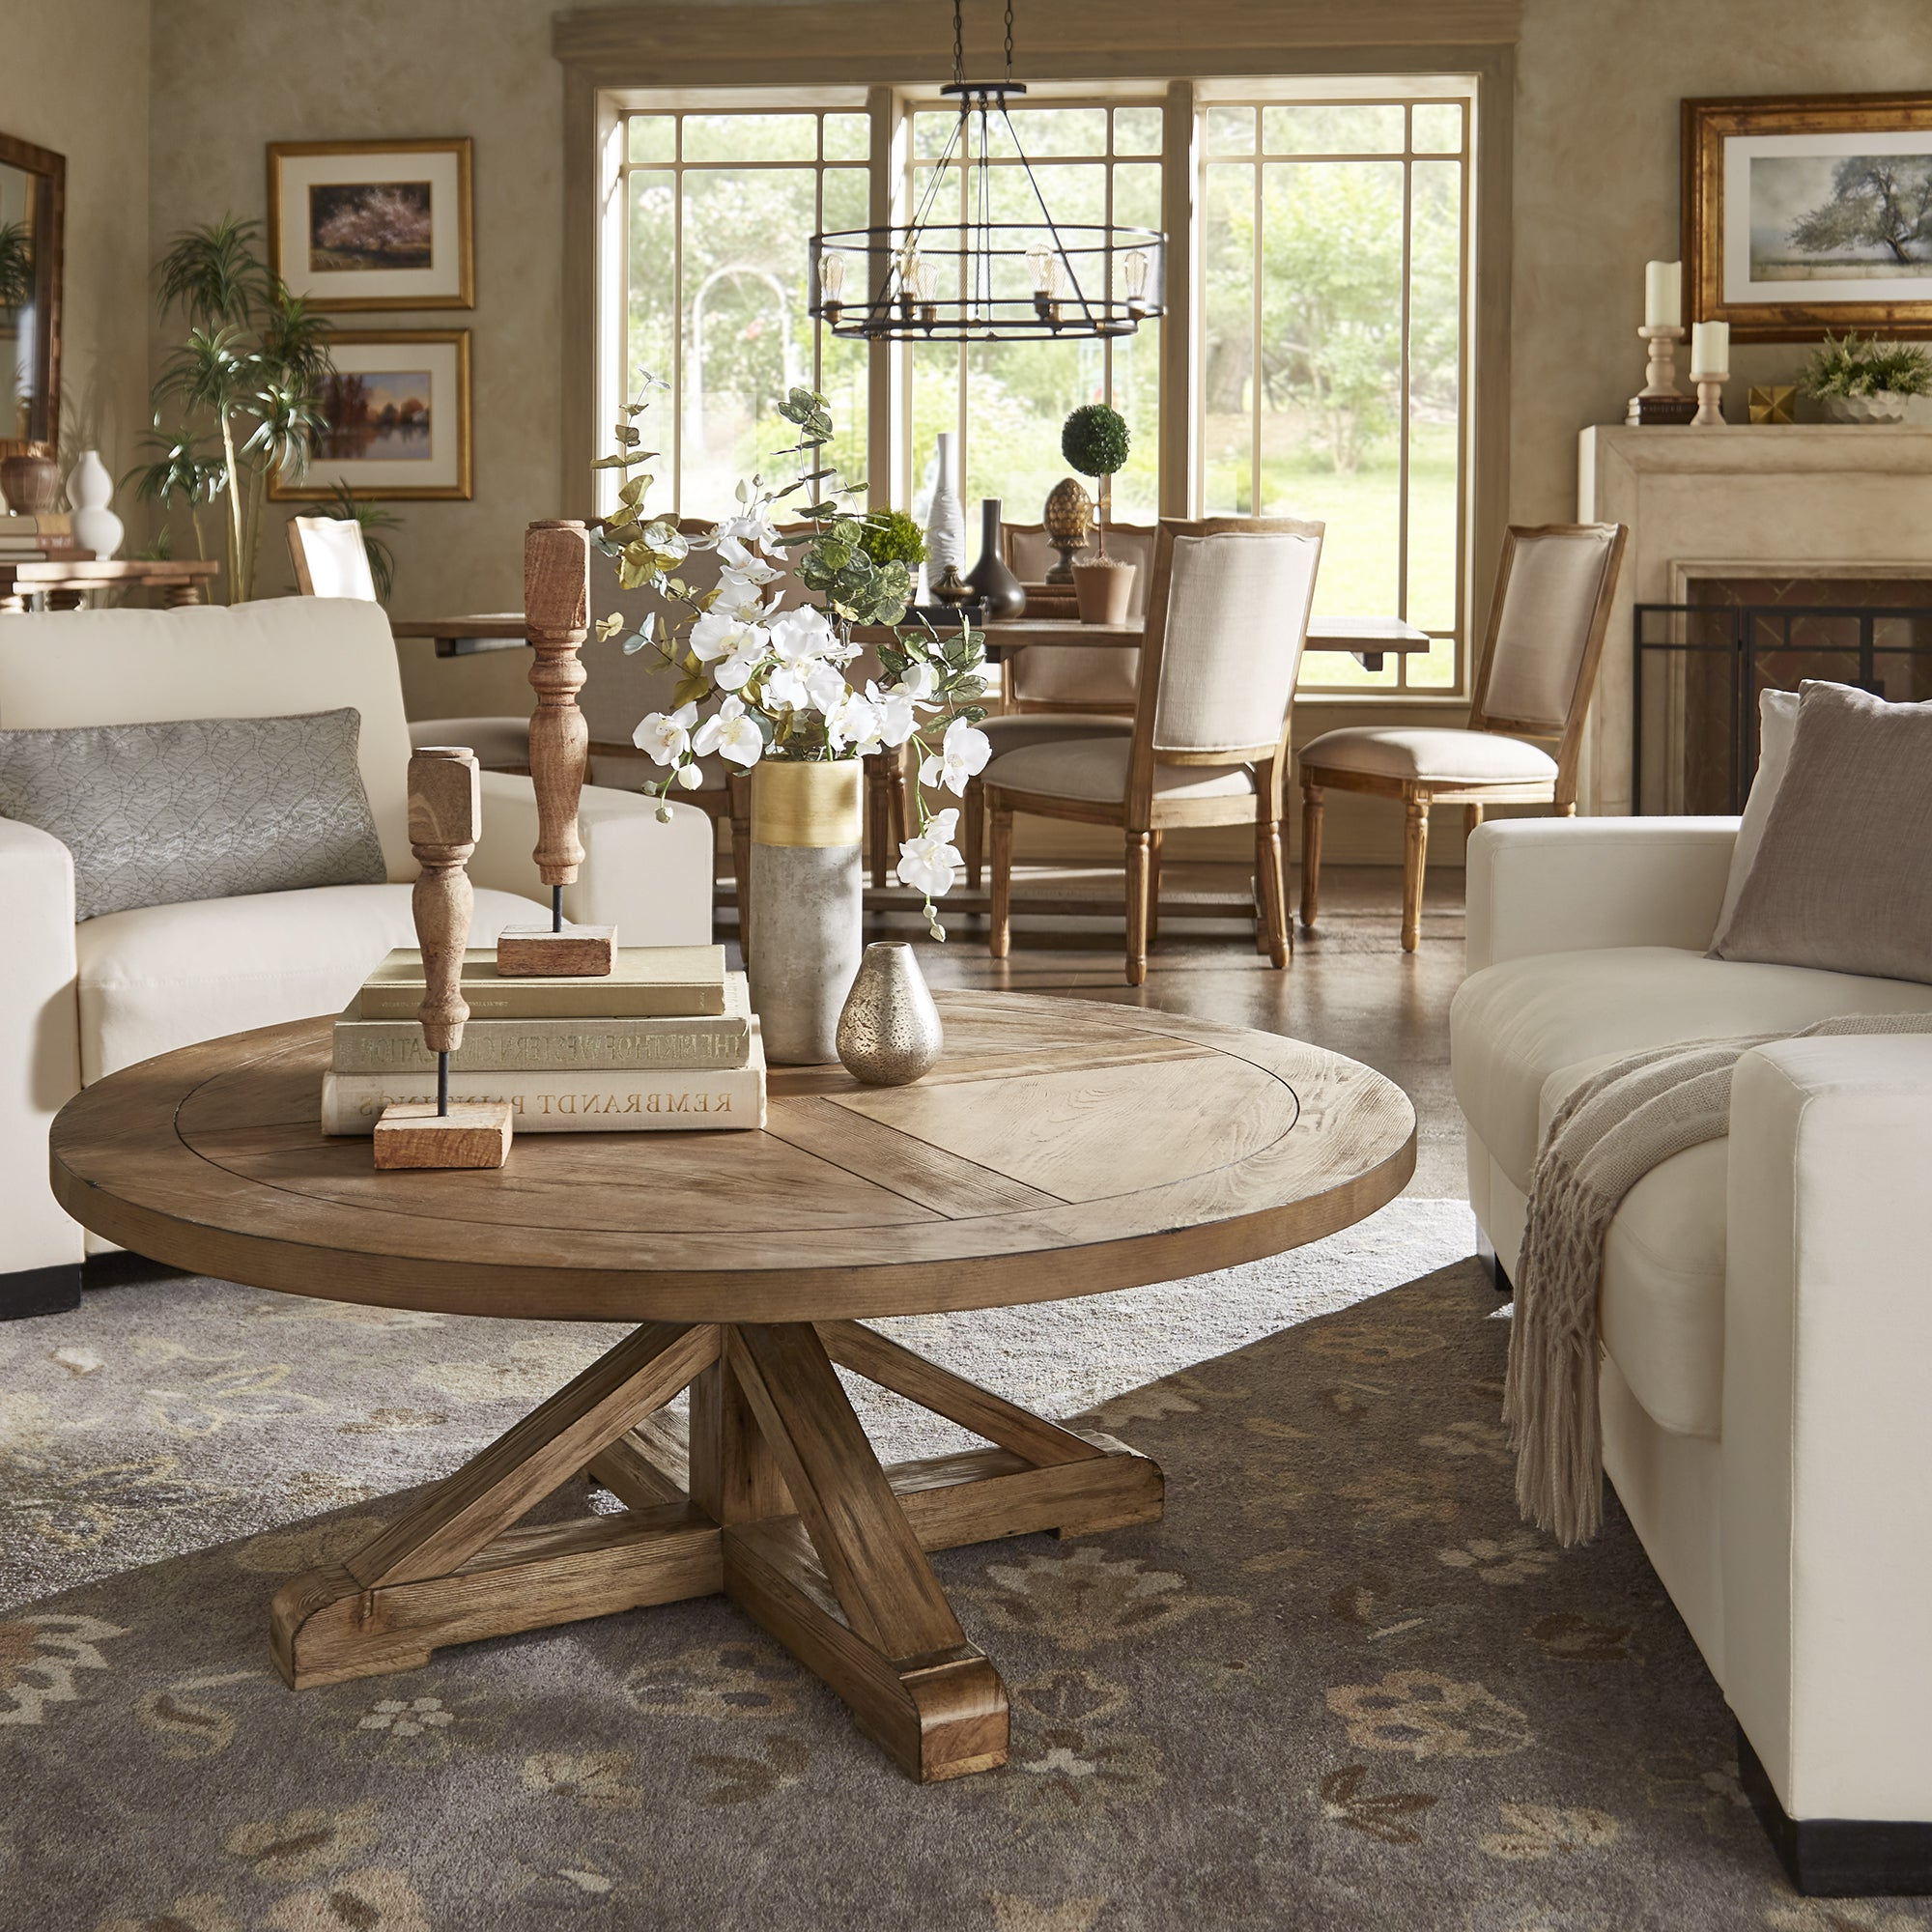 Fashionable Edmaire Rustic Pine Baluster Coffee Tables Throughout Benchwright Rustic X Base Round Pine Wood Coffee Tablebrown 54 X  (View 11 of 20)